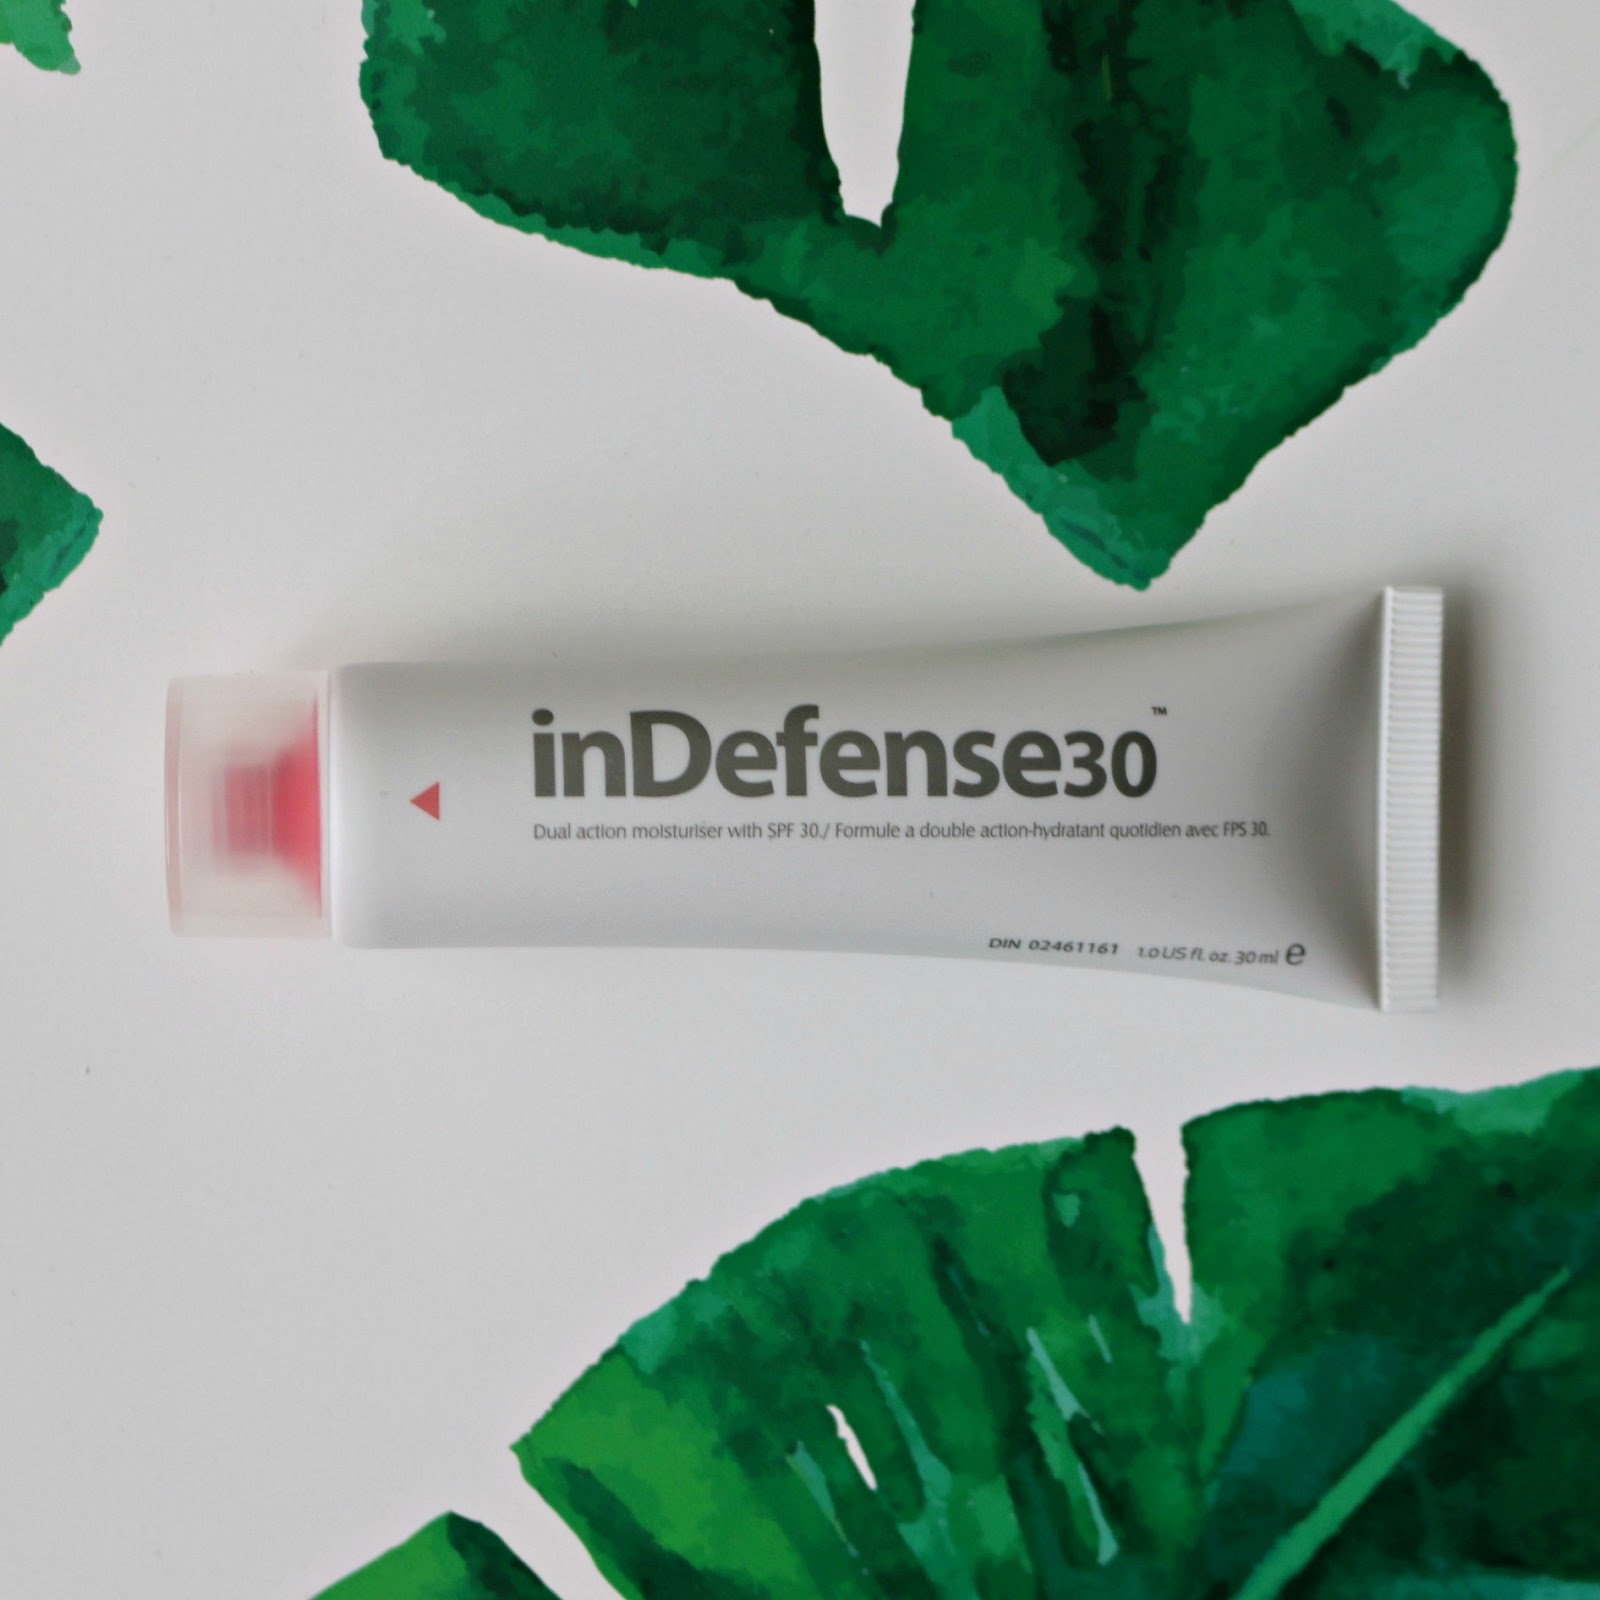 My Top 5 Cruelty Free And Travel Friendly Facial Sunscreens Aimons Universal Adaptor All In One International Charger White This Brand Is Montreal Based Their Products Are Made Here As Well I Am A Big Fan